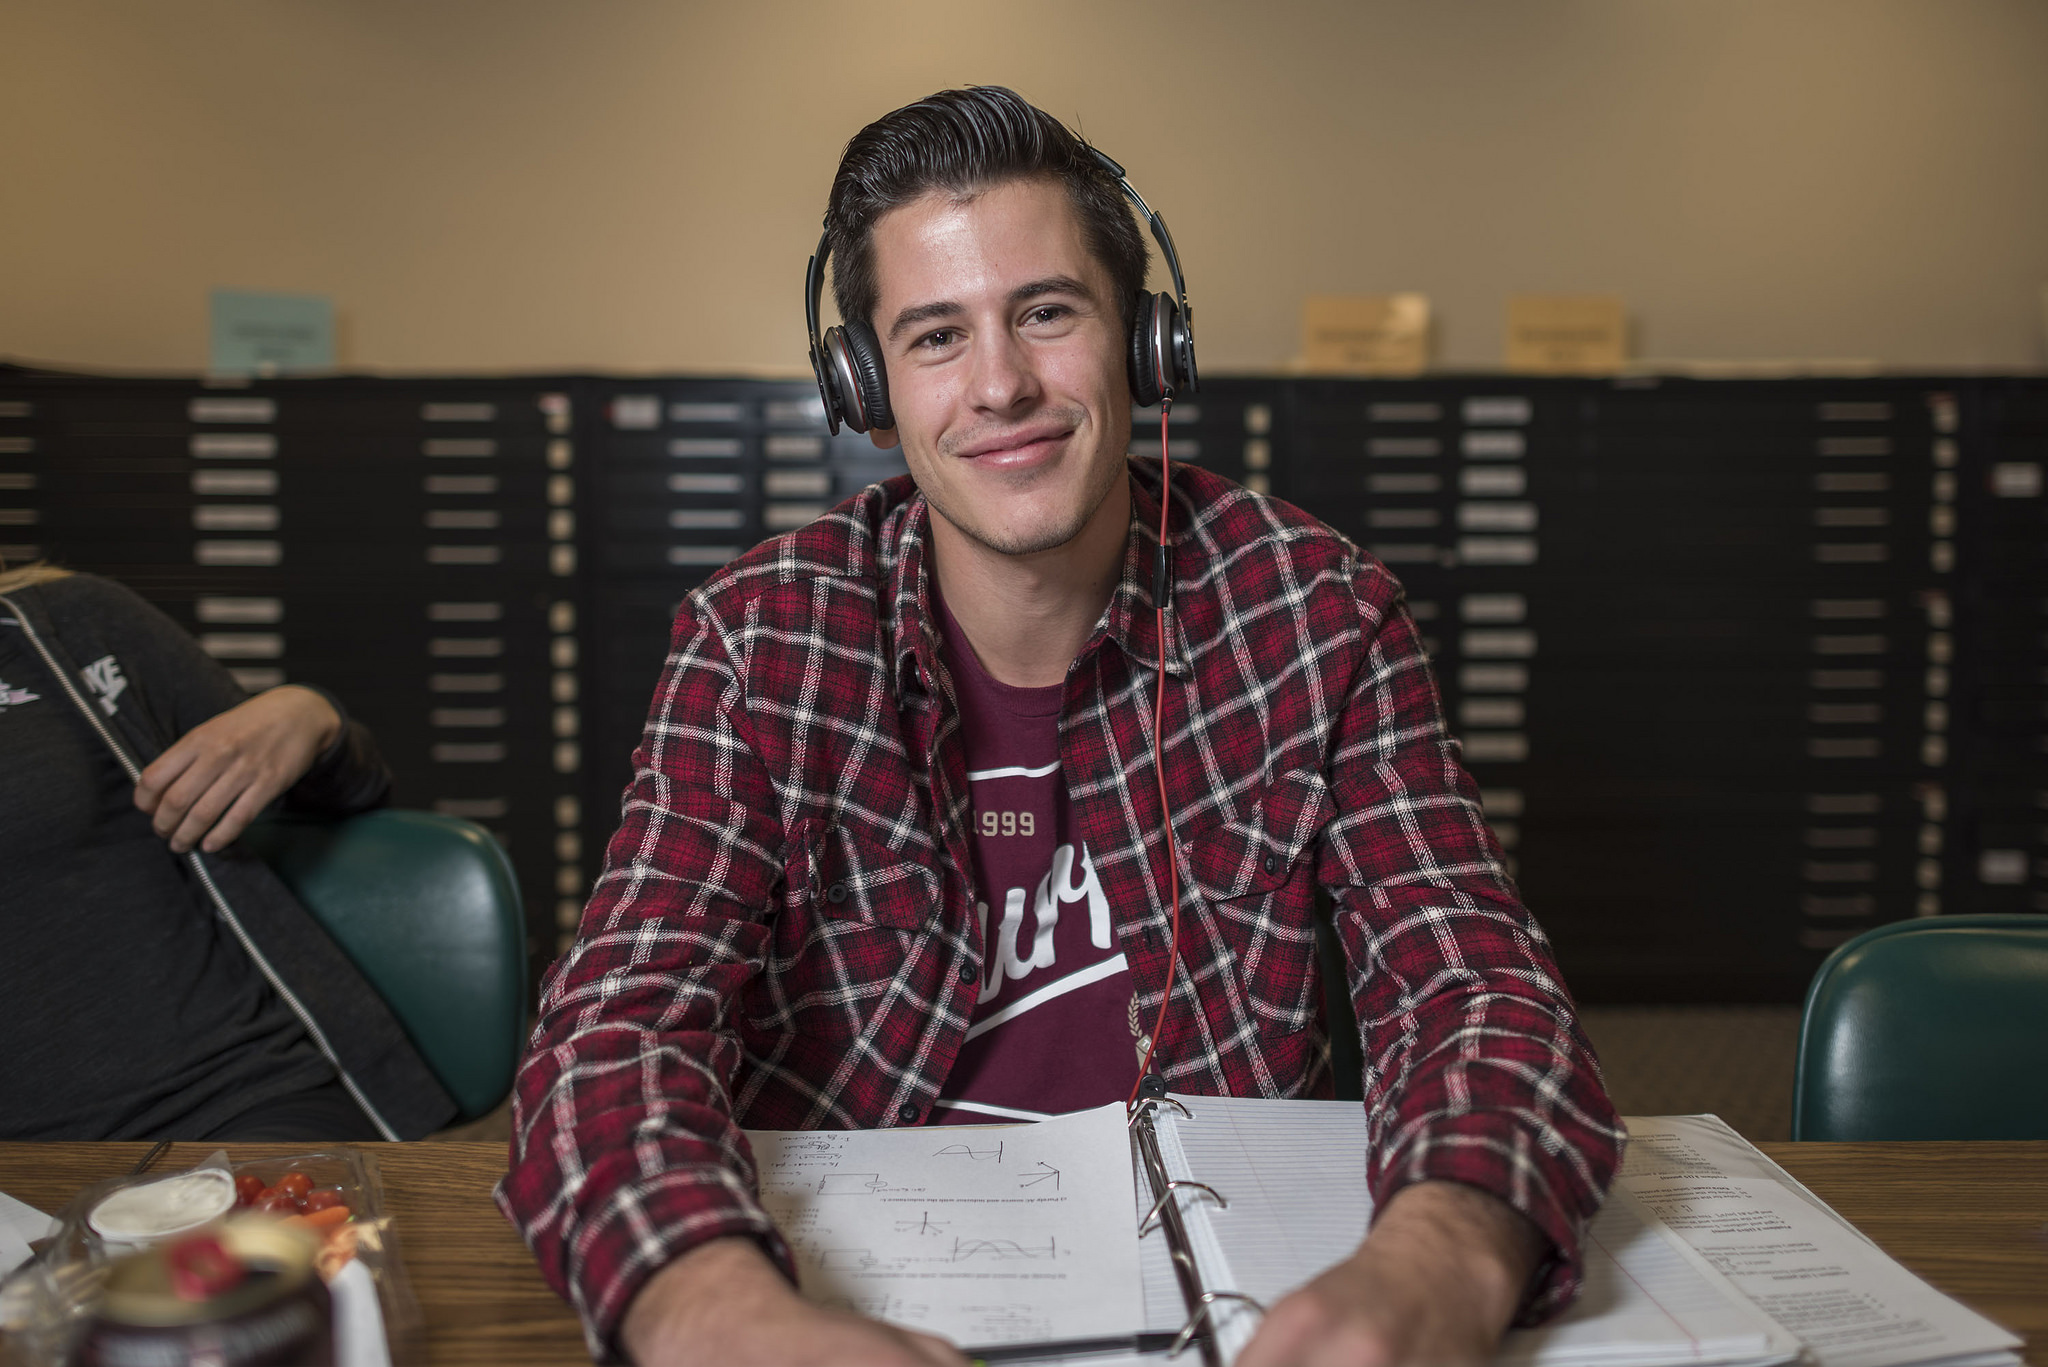 Male student with headphones on studying in the  library.